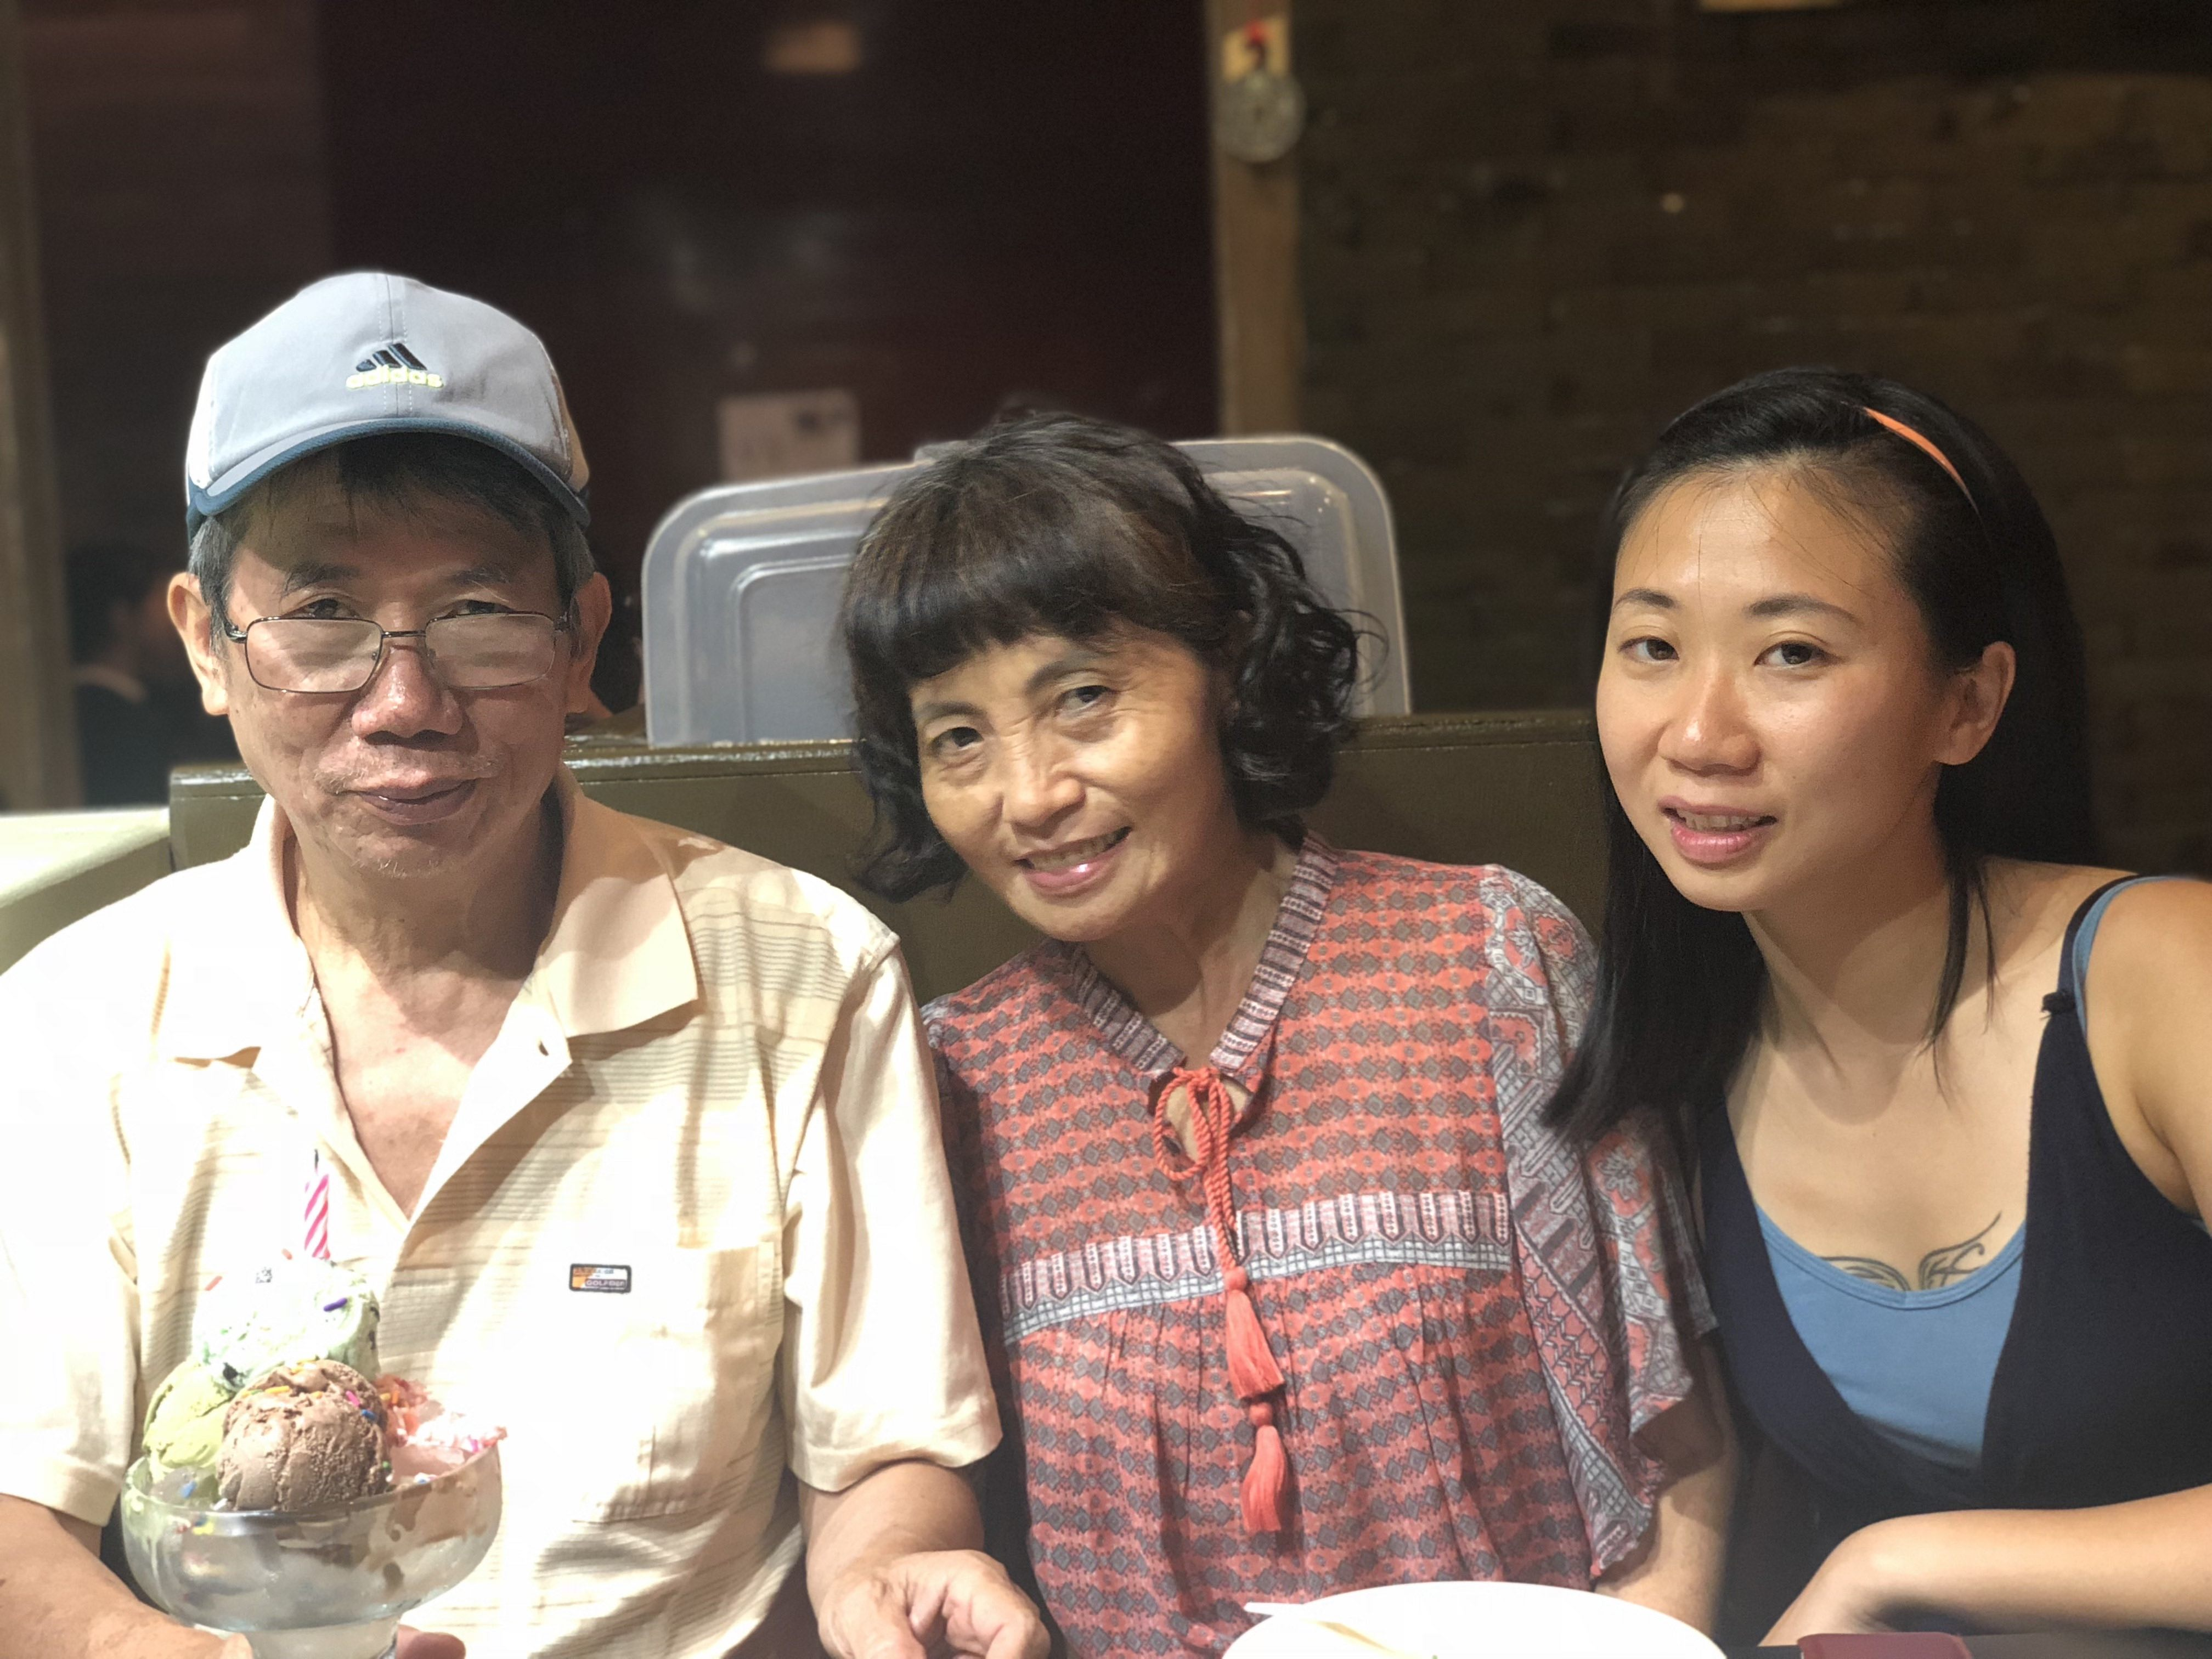 Now that I'm older, I've come to realise that my parents are some of the only people in my life who would support and provide me with unconditional love. I've been through breakups and seen friends come and go — there were times when I felt so lonely, but my parents have been with me through the ups and downs.